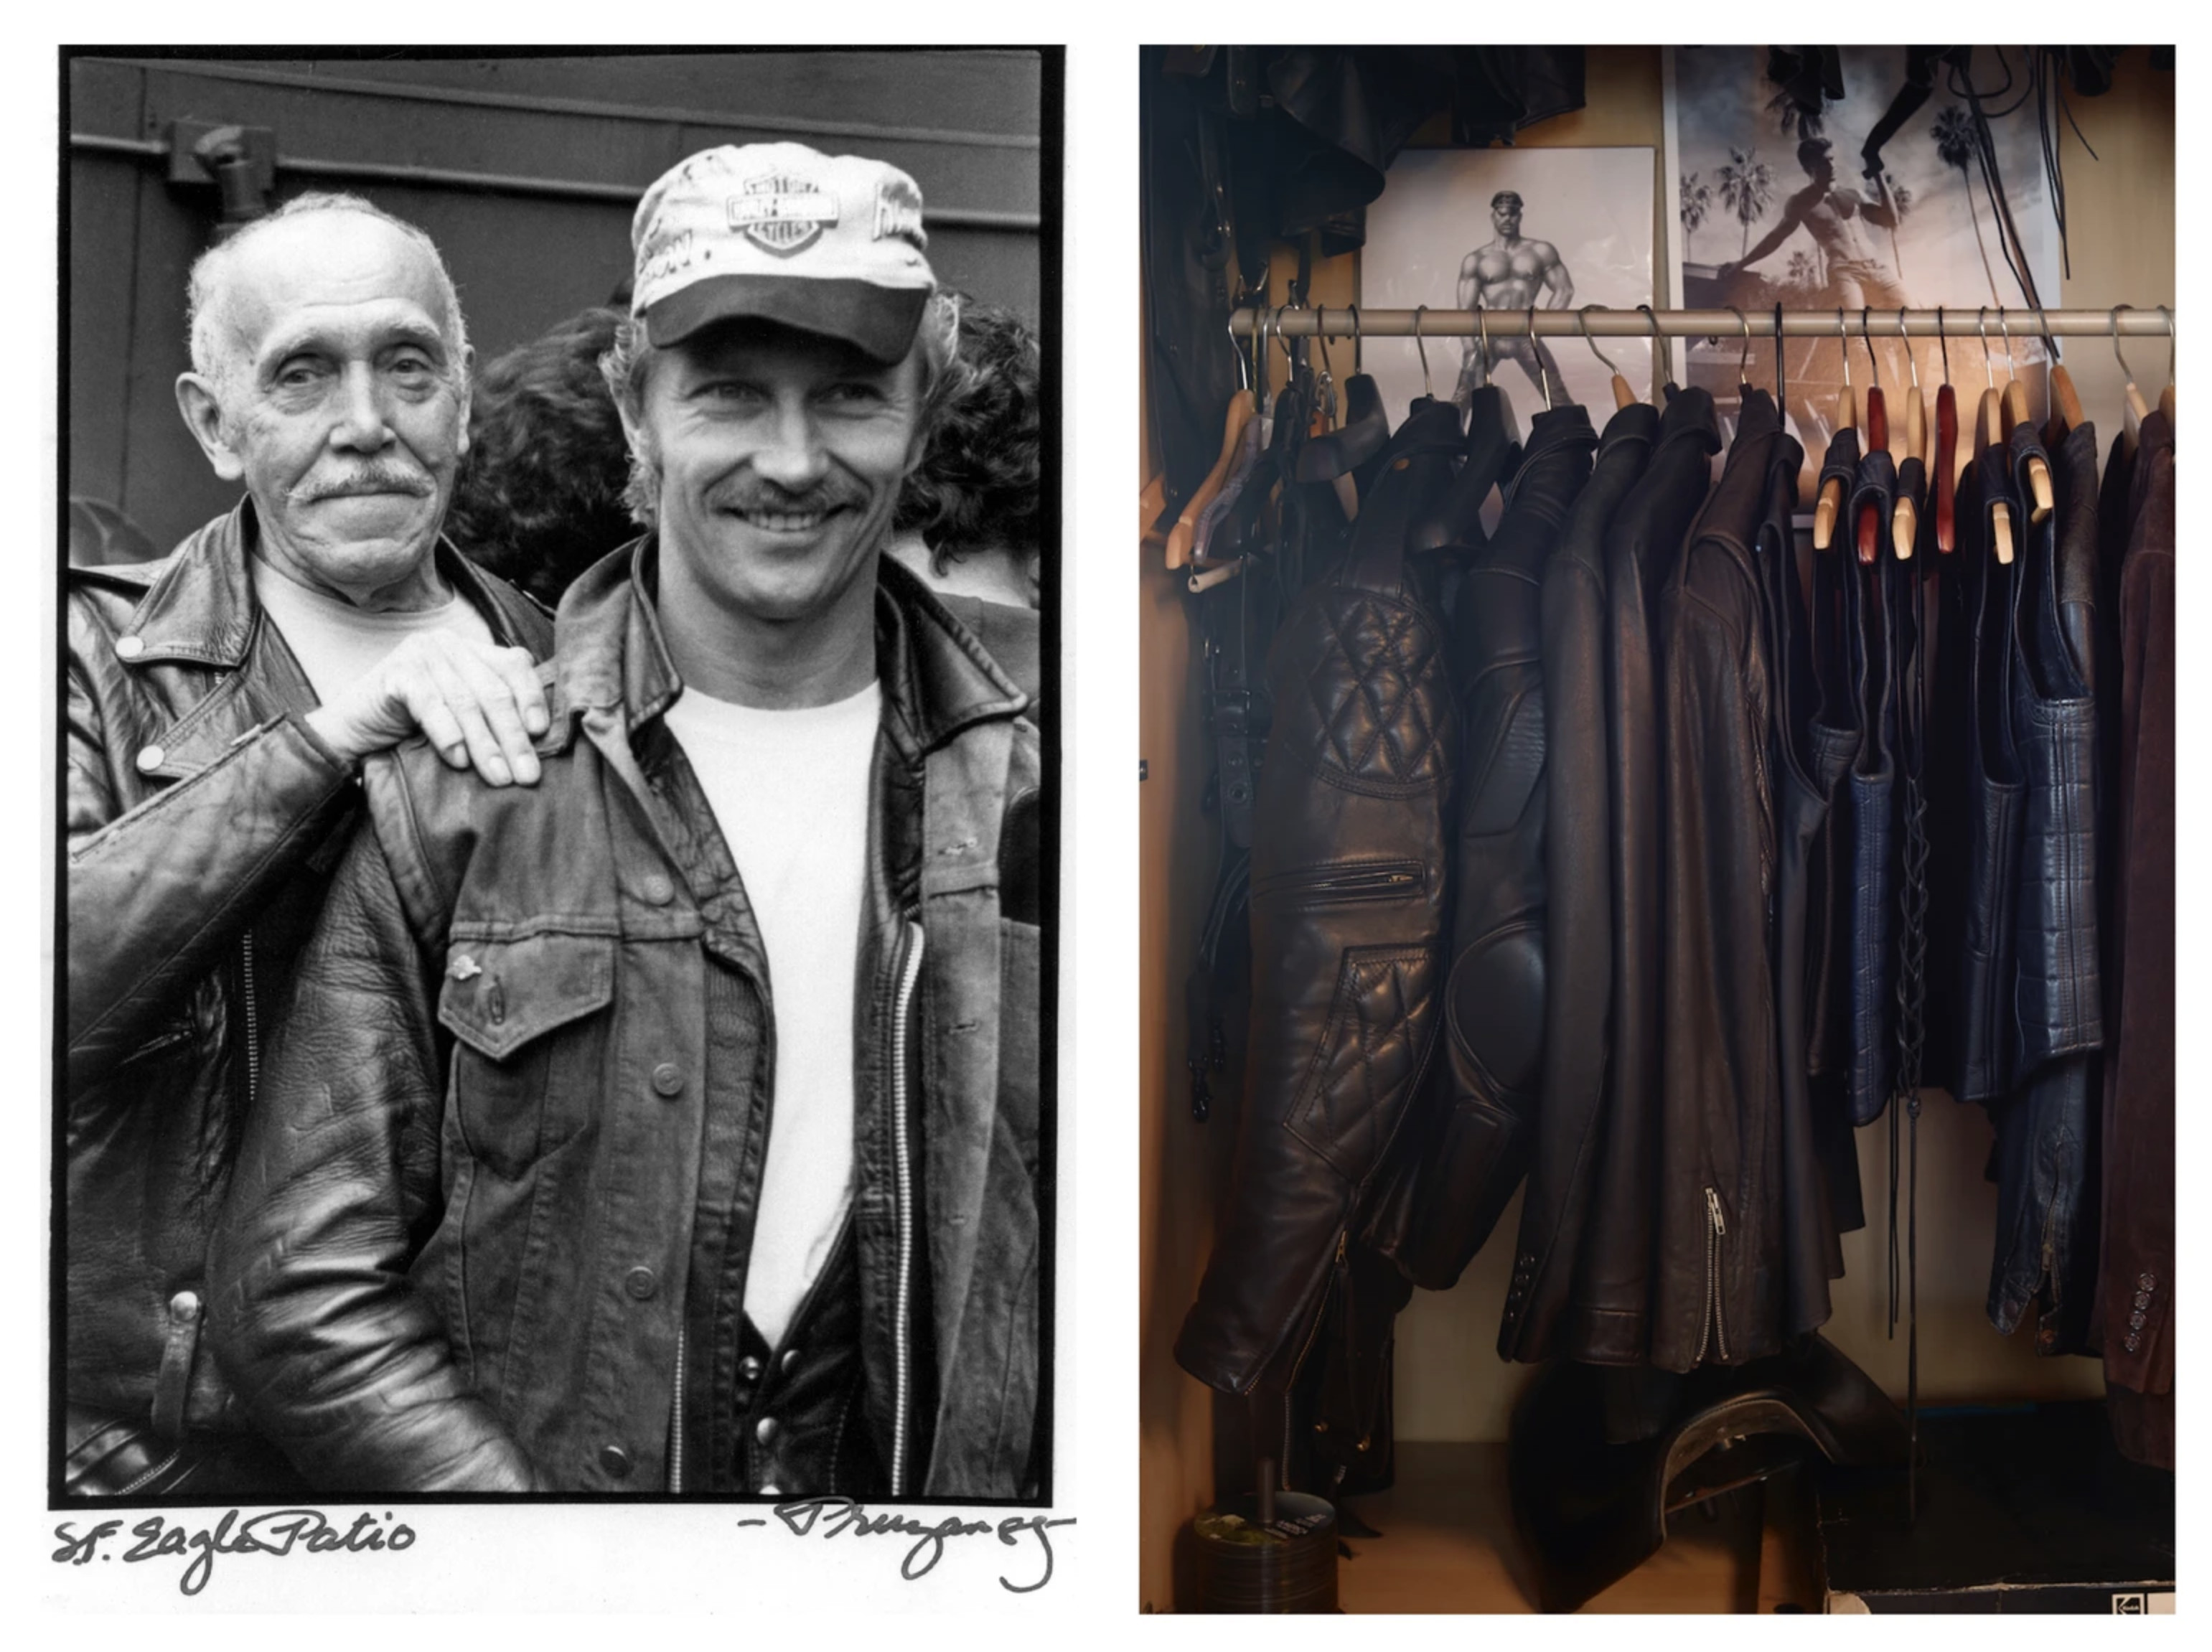 LEFT: LAAKSONEN AND HIS PROTÉGÉ DURK DEHNER AT A FUNDRAISER FOR THE FOUNDATION AT THE EAGLE IN SAN FRANCISCO, 1985. PHOTO: ROBERT PRUZAN. RIGHT: LEATHER JACKETS HANGING INSIDE TOM HOUSE, LOS ANGELES. PHOTO: MARTYN THOMPSON. AS FEATURED IN THE BOOK TOM HOUSE, PUBLISHED BY RIZZOLI.